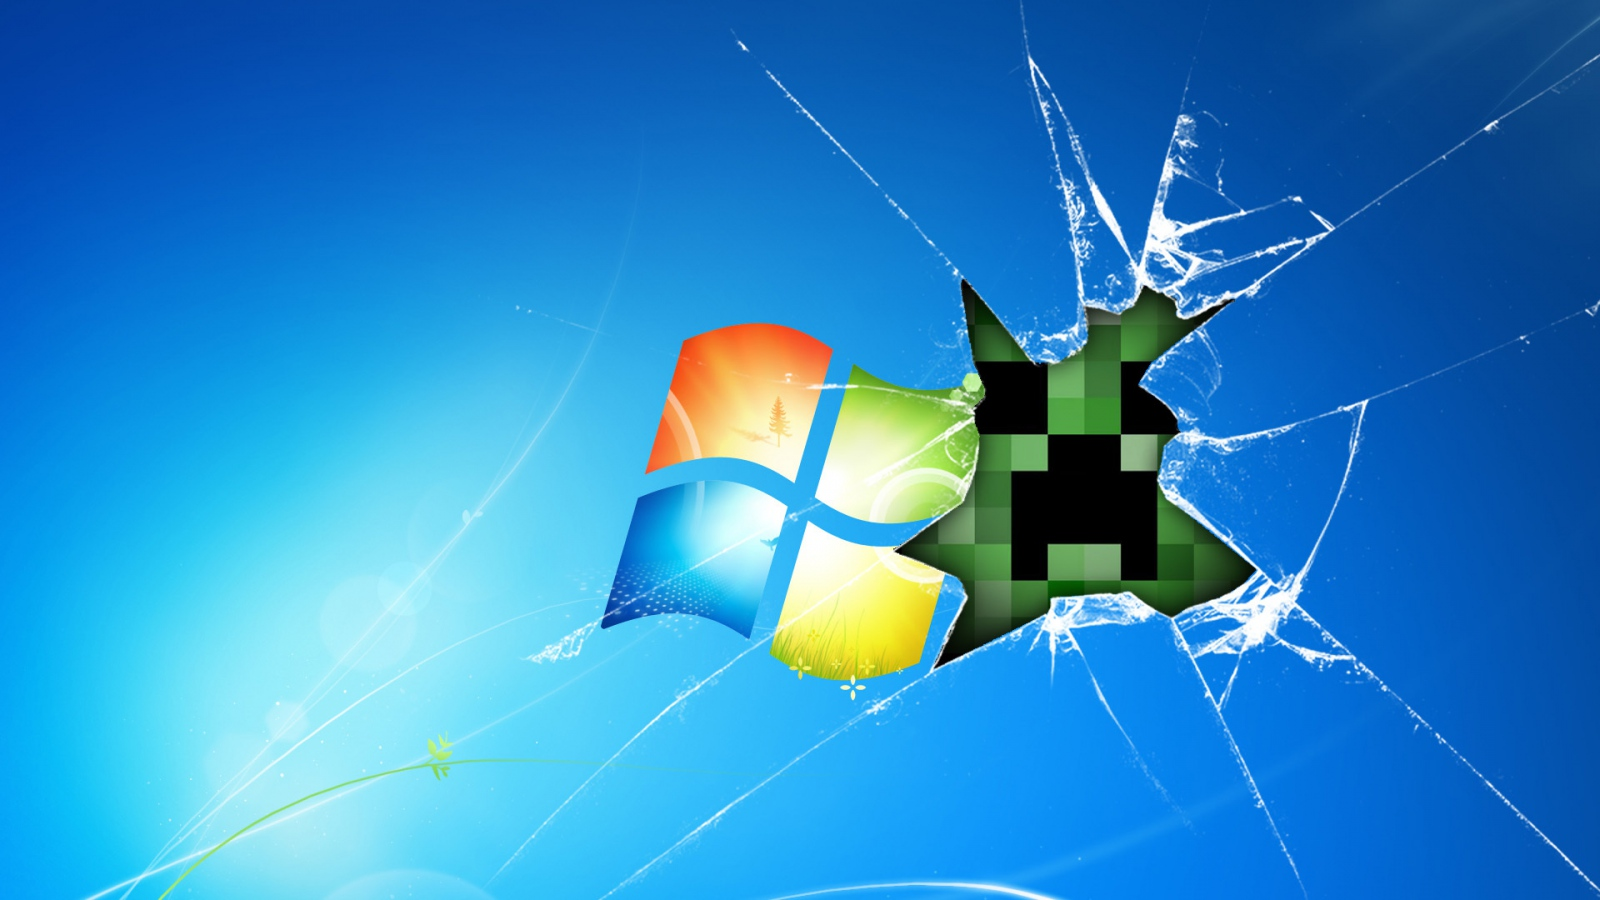 Microsoft windows bilder windows vs minecrat hd for Microsoft windows windows